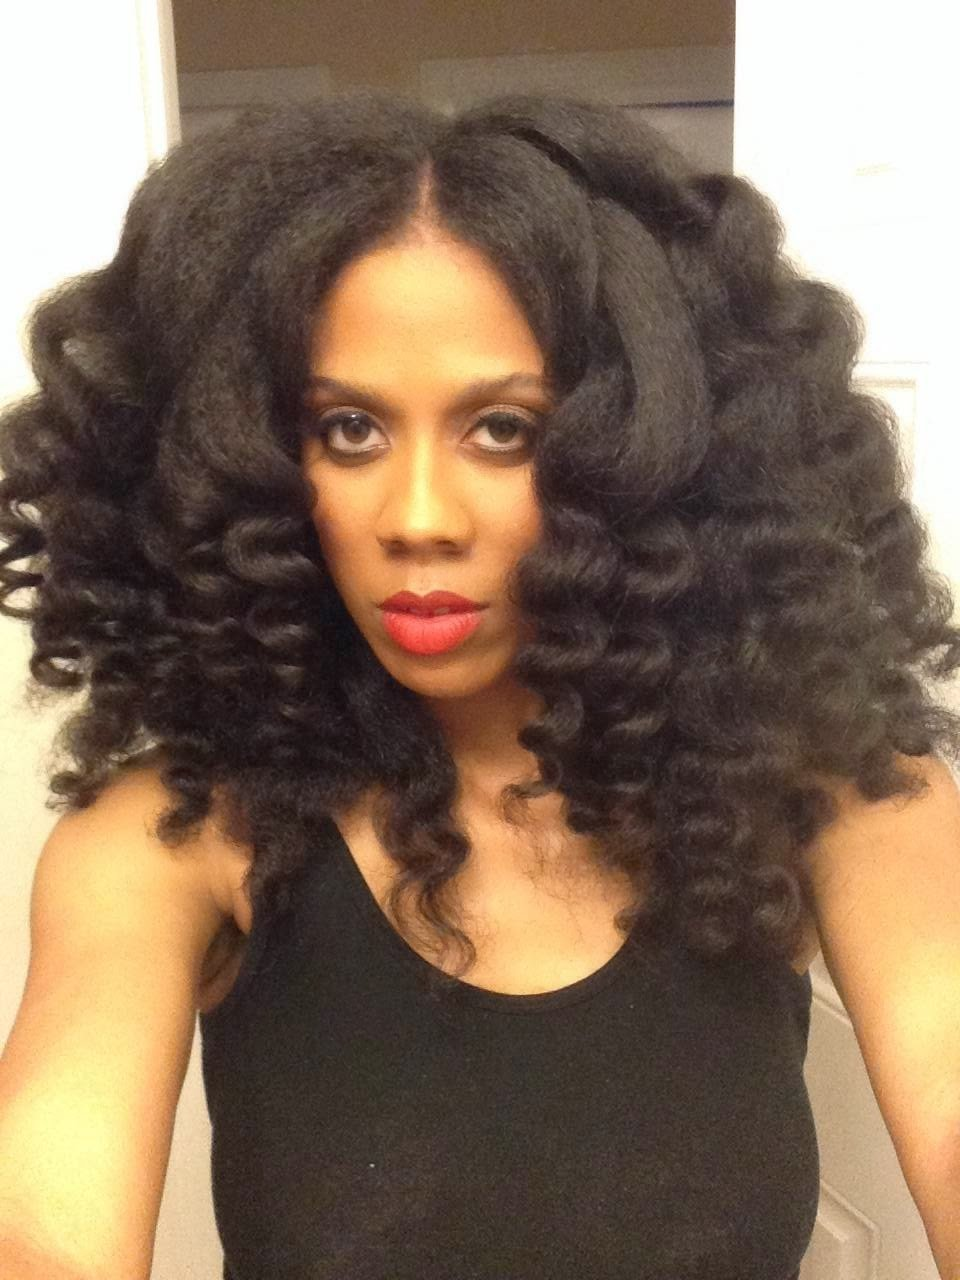 The Best Curling Wand Tutorial For Natural Hair Curlynikki Pictures